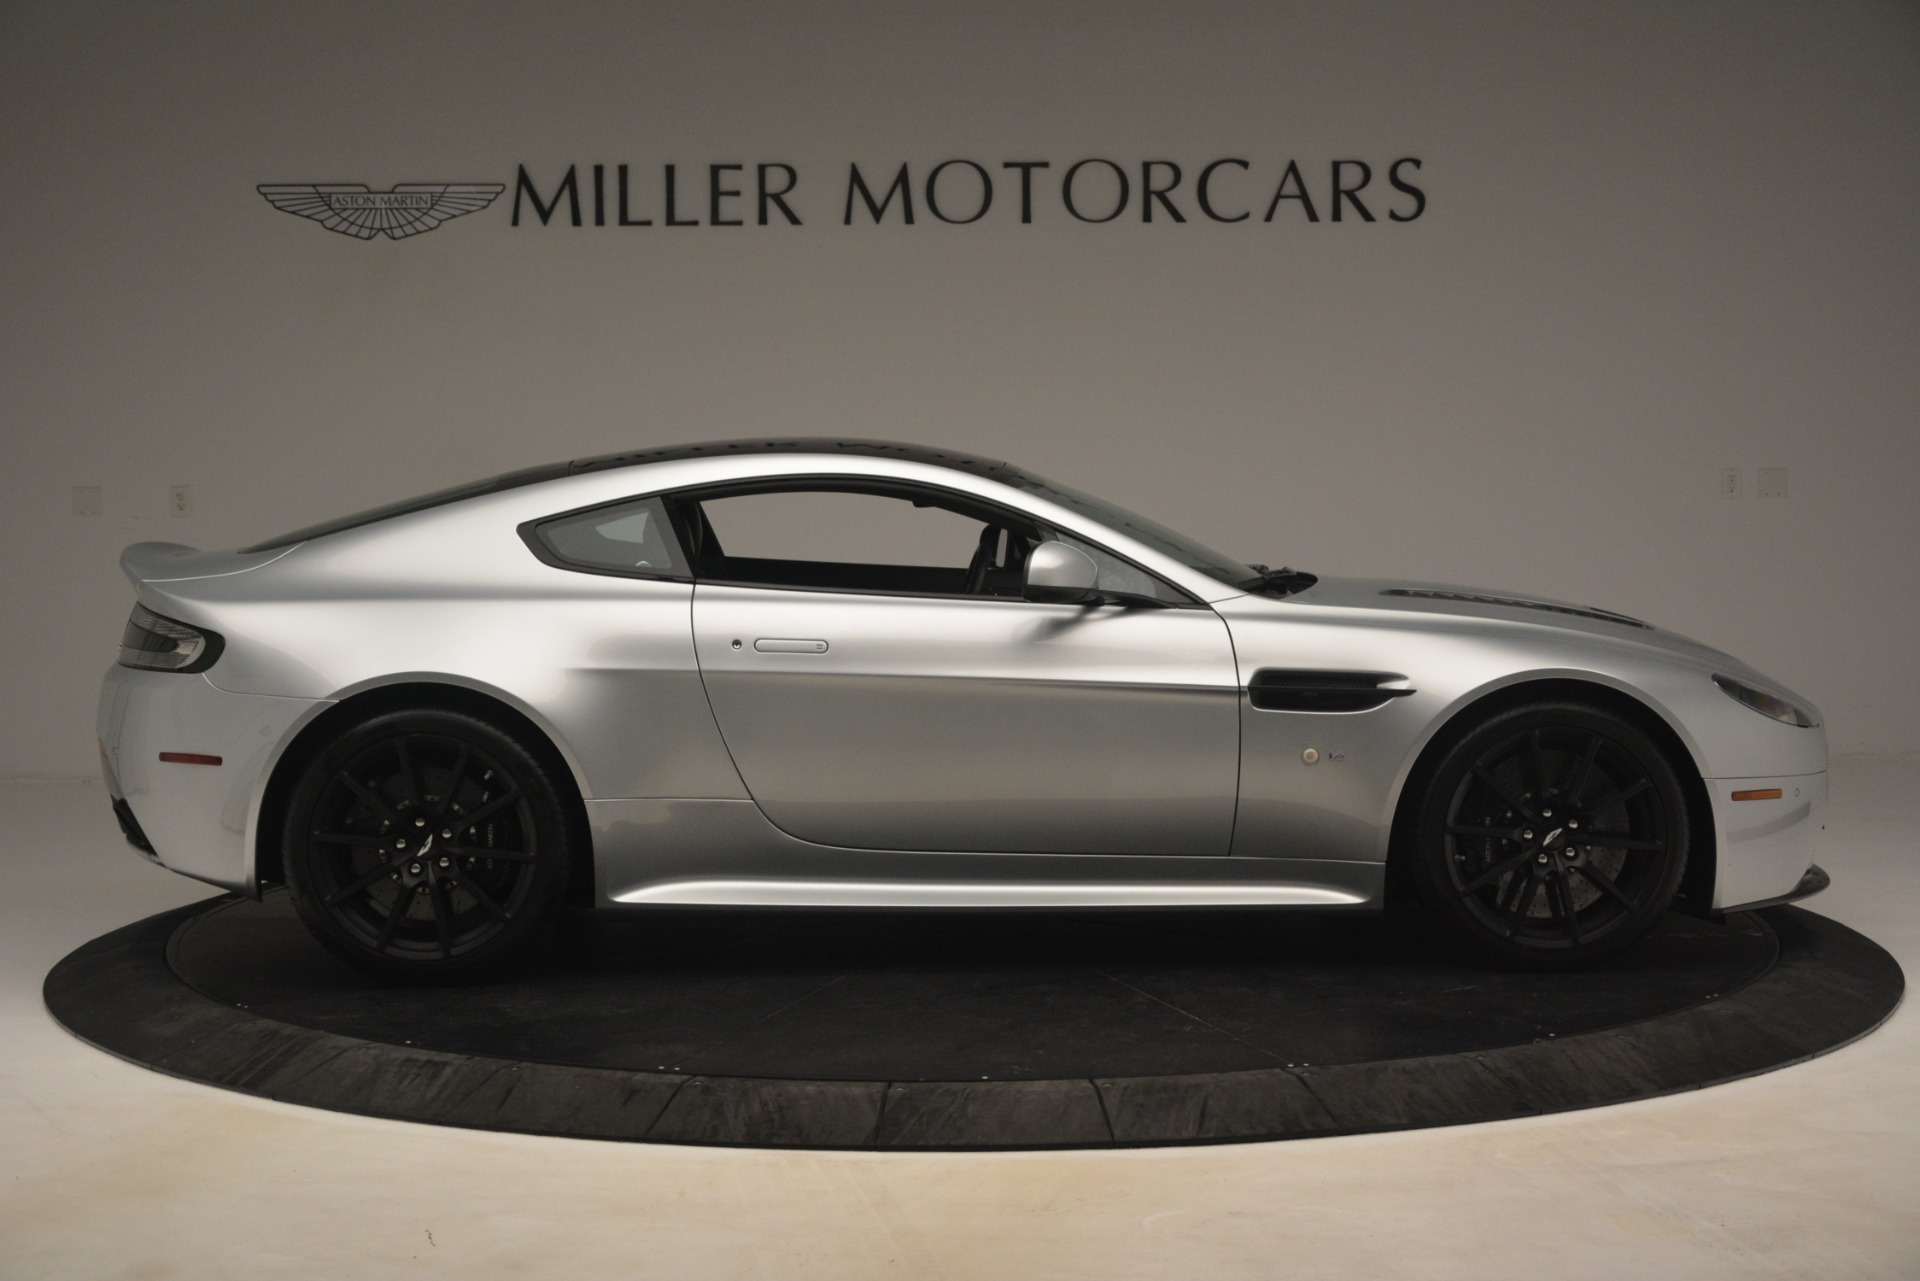 Used 2015 Aston Martin V12 Vantage S Coupe For Sale In Greenwich, CT 3206_p9